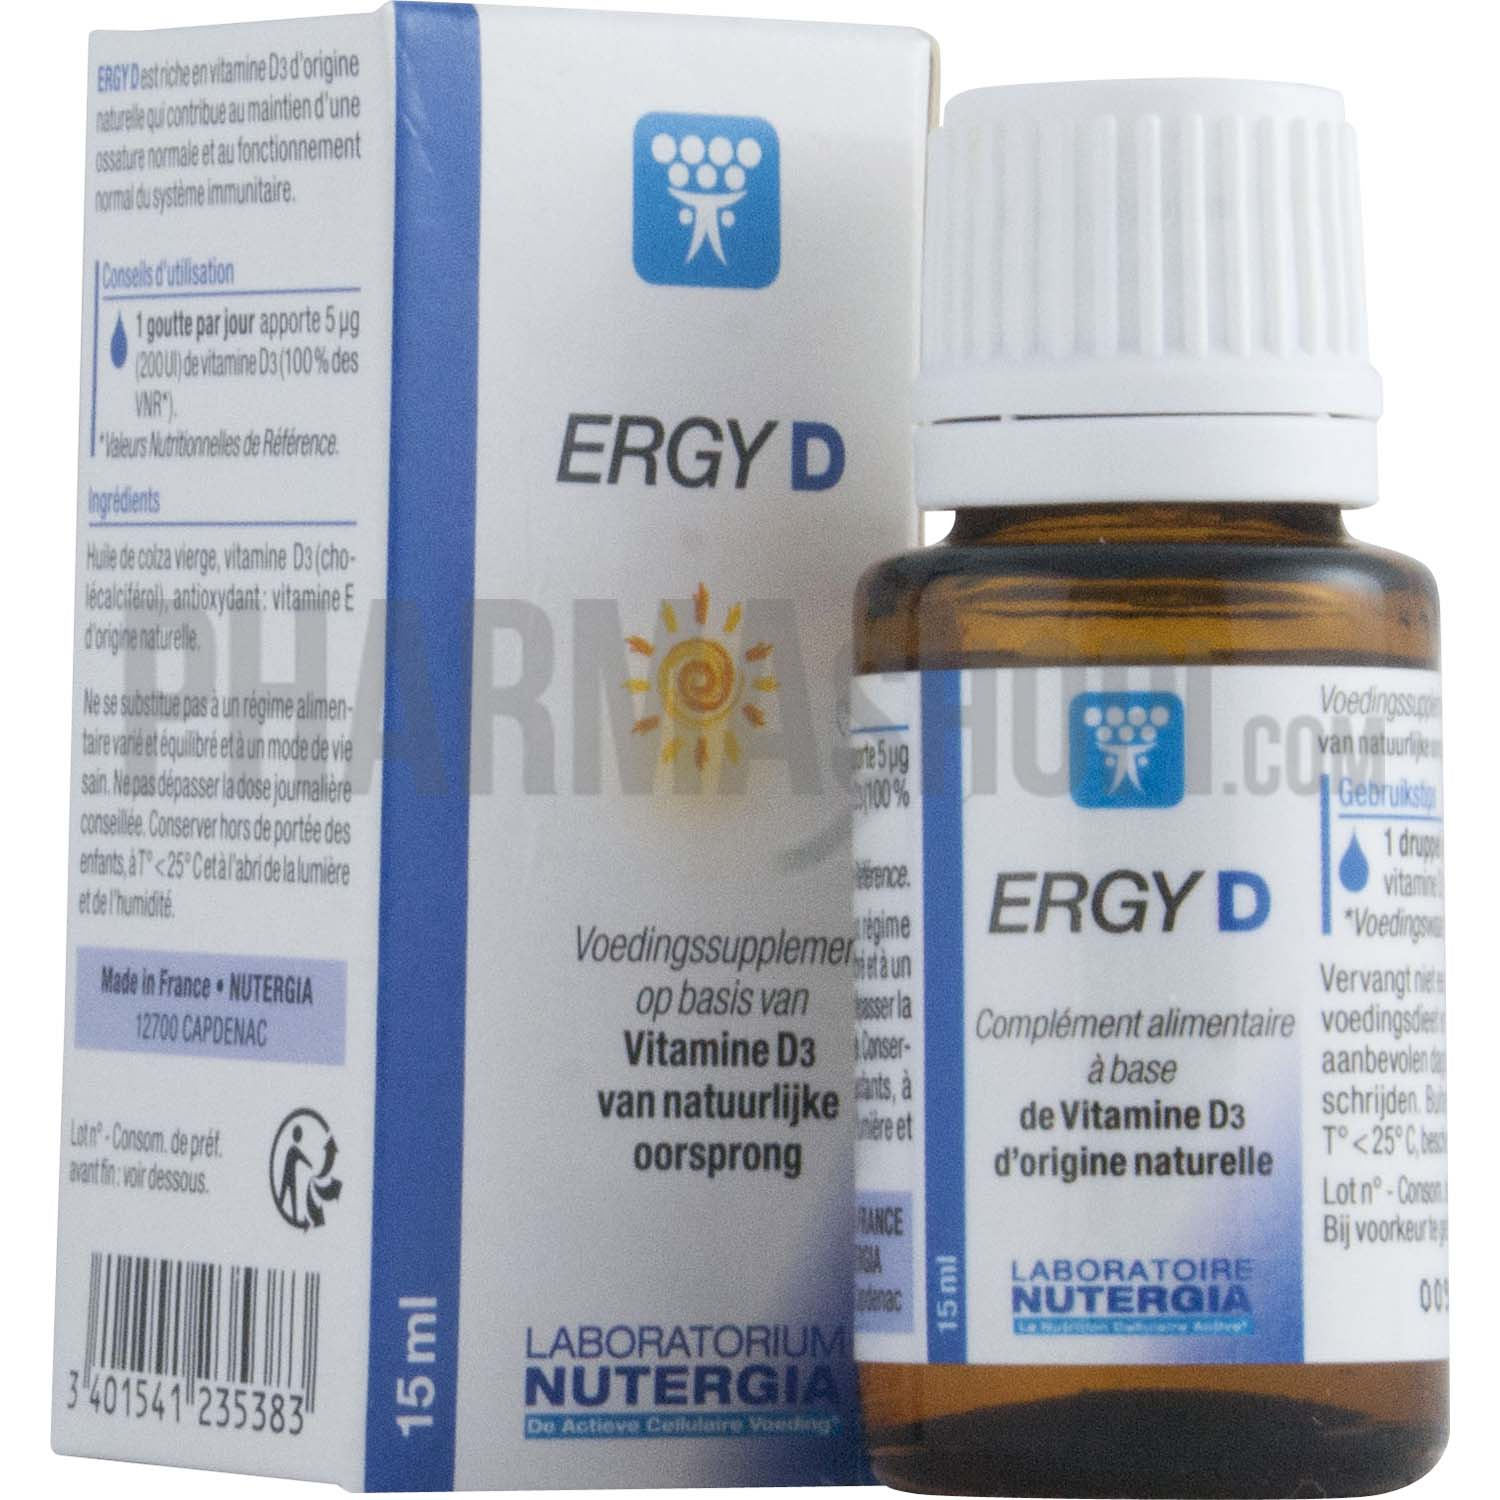 Ergy D Nutergia Booster Vos Defenses Immunitaires Naturellement